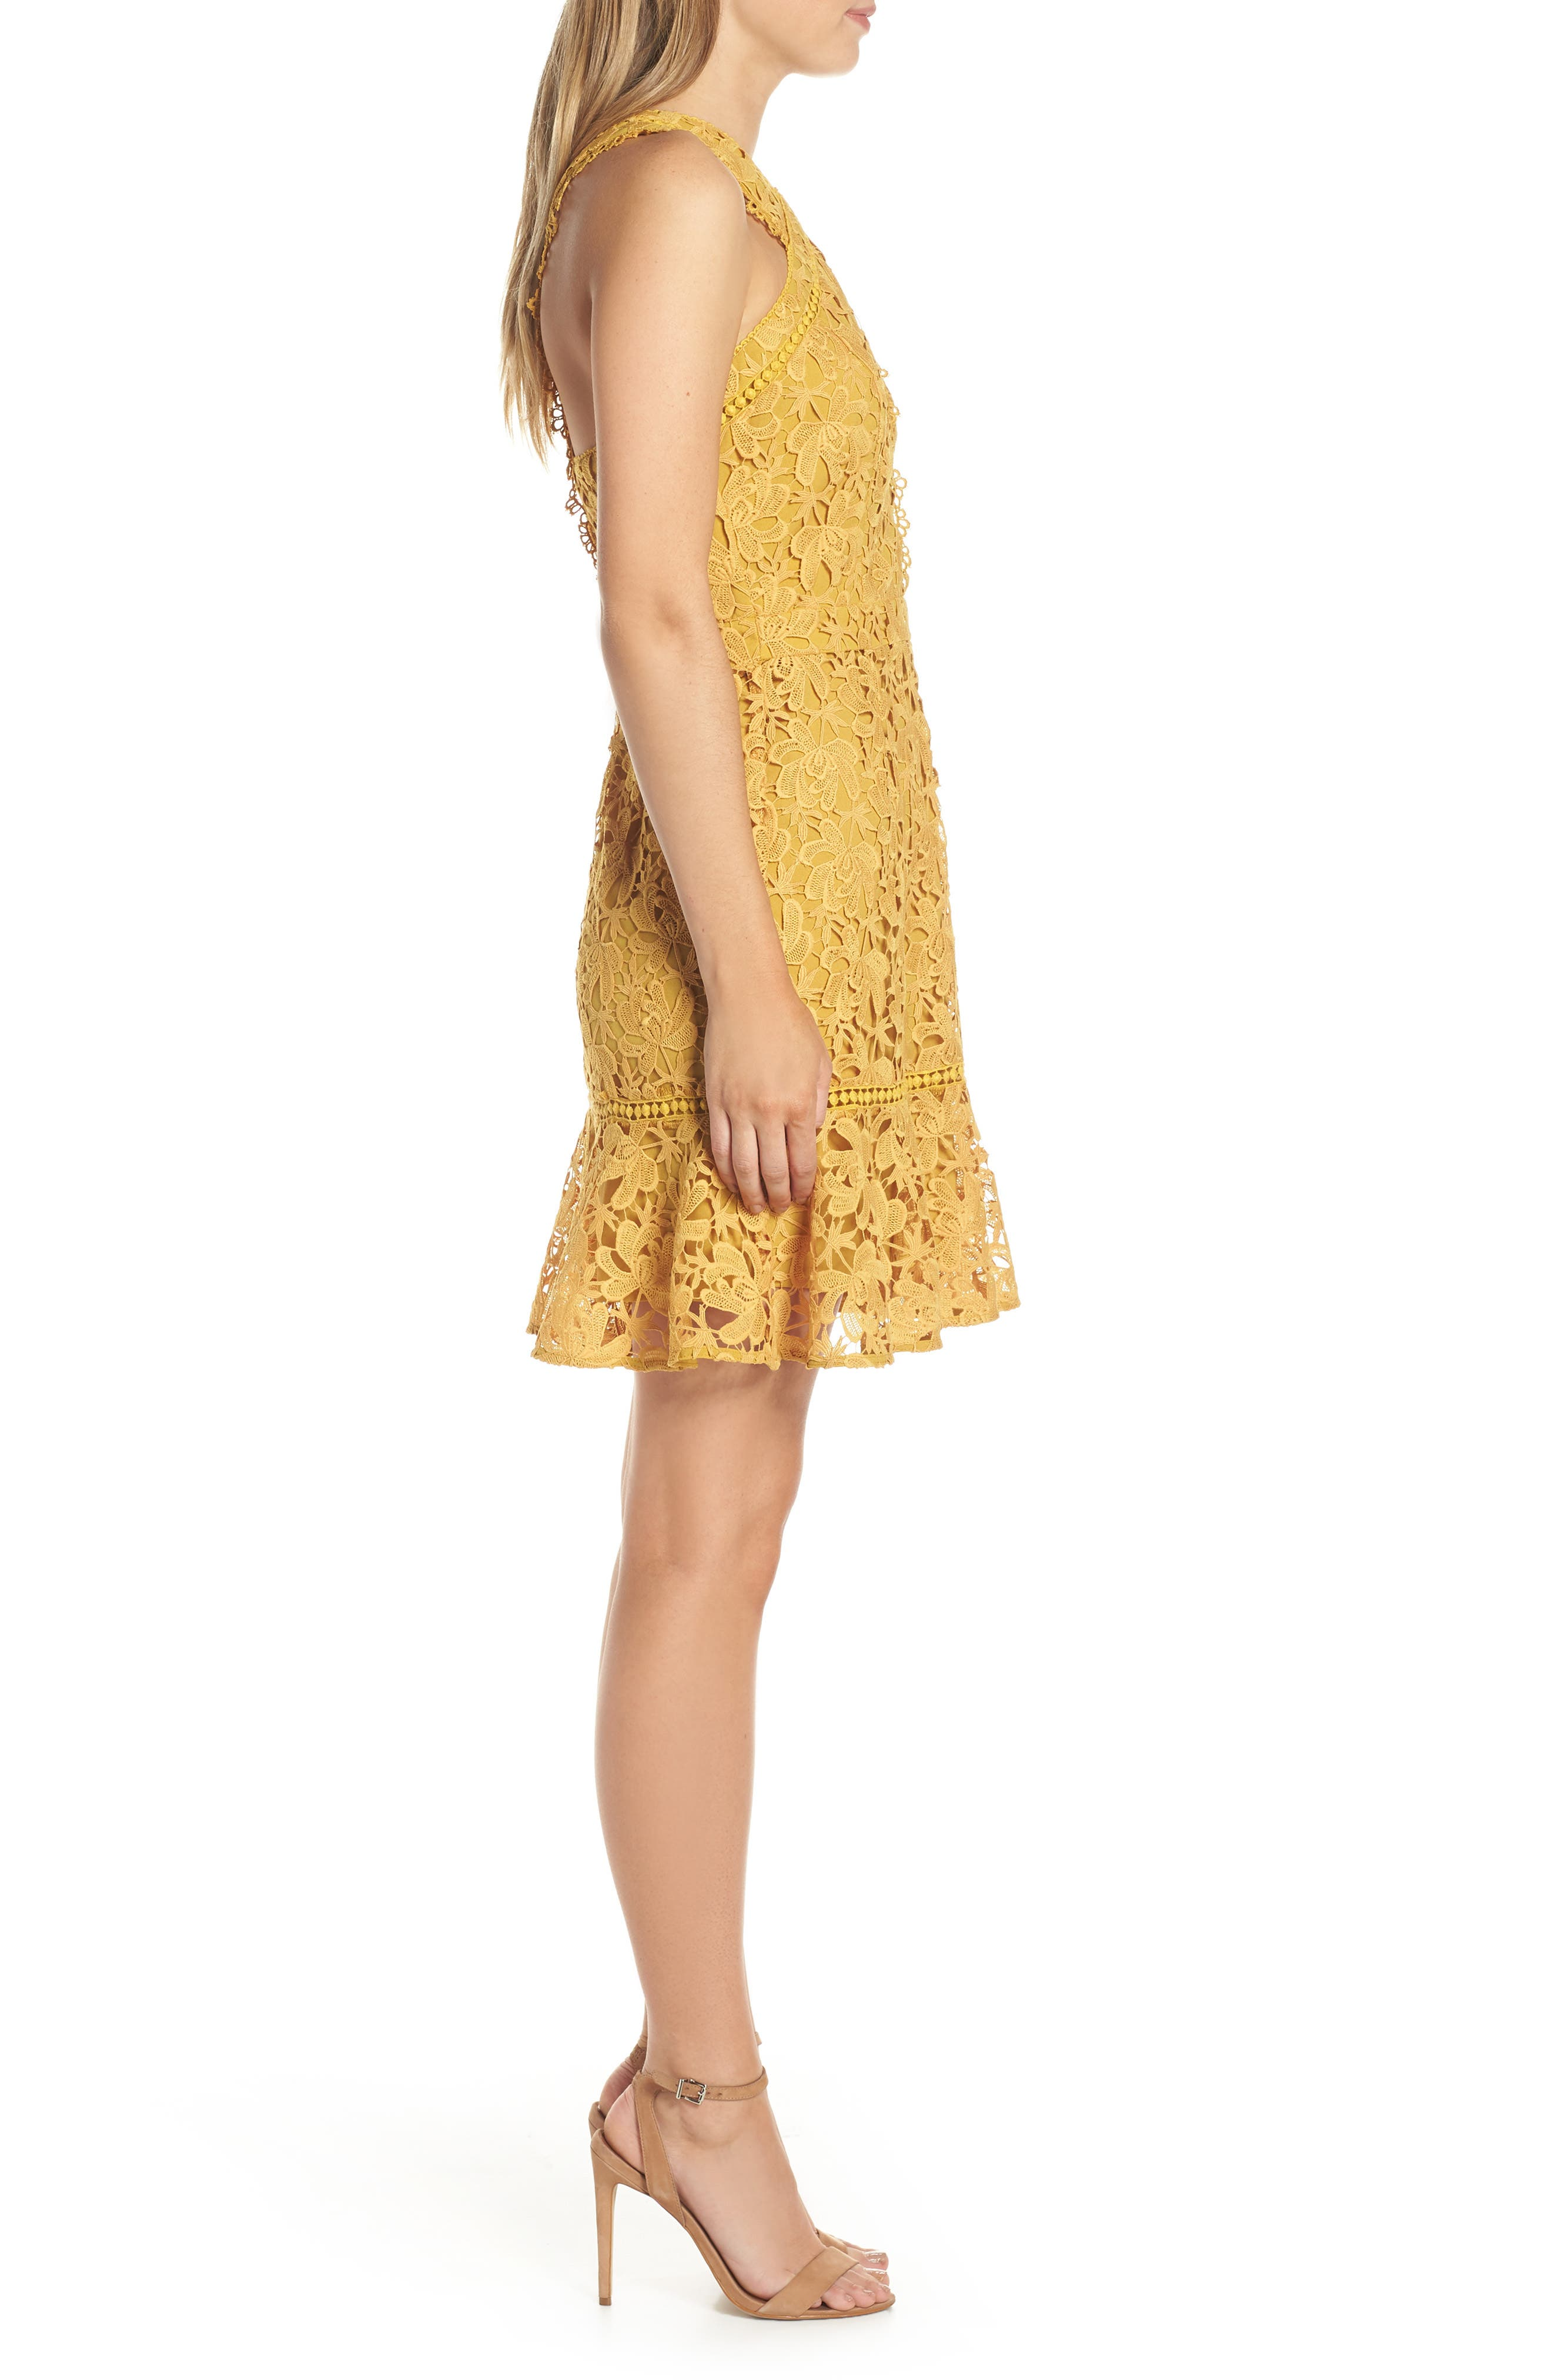 ADELYN RAE,                             Jessie Crisscross Neck Lace Dress,                             Alternate thumbnail 3, color,                             FREESIA